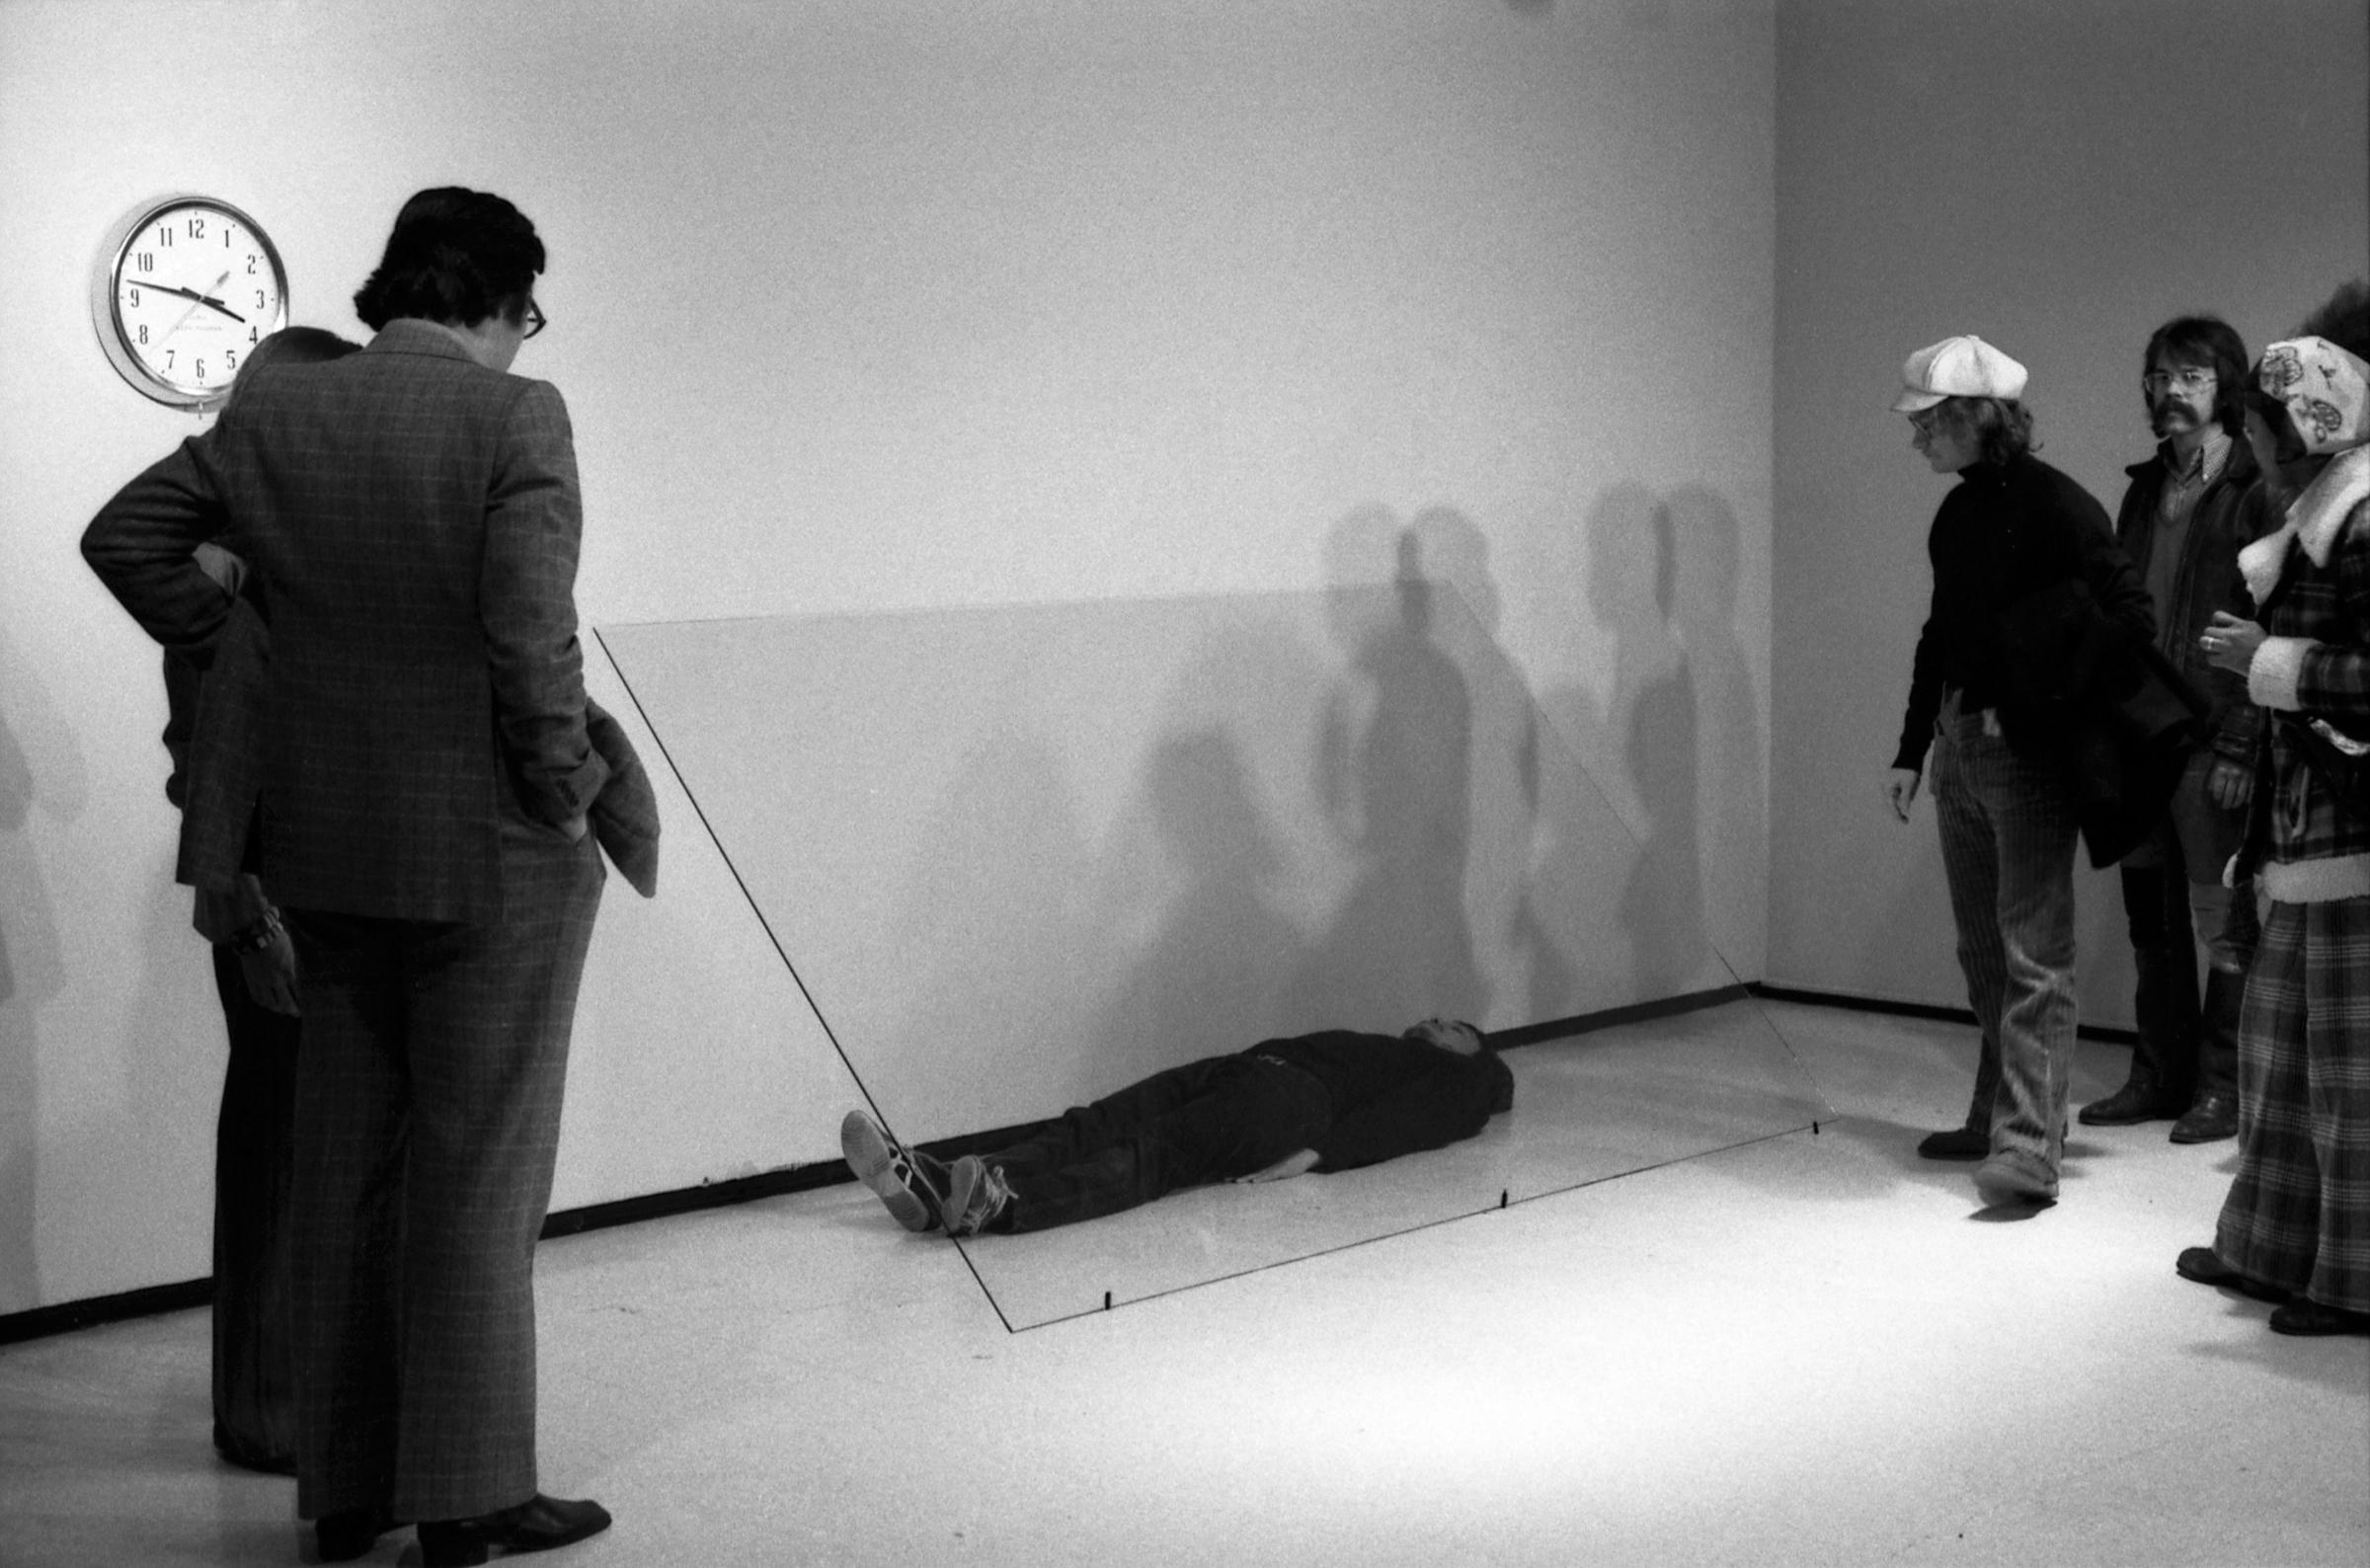 A group of museum visitors observe a man lying on the floor underneath a sheet of glass.